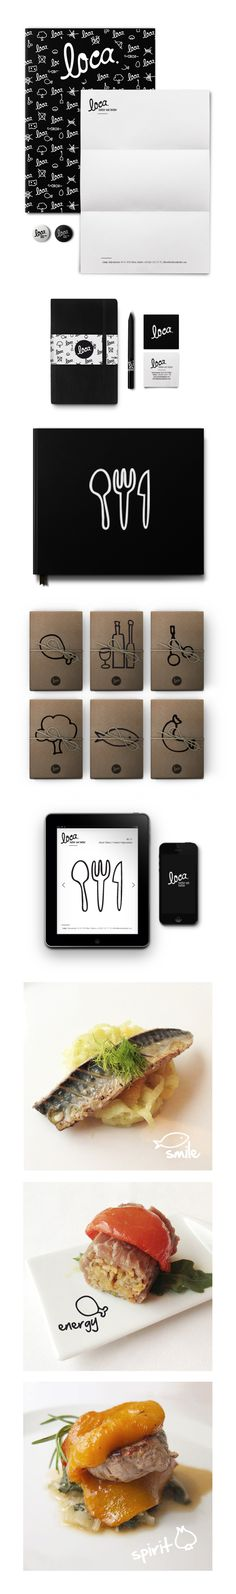 Loca. by iamcps, via Behance Curated by: Transition Marketing Services | Small Business Branding & Marketing Professionals http://www.transitionmarketing.ca